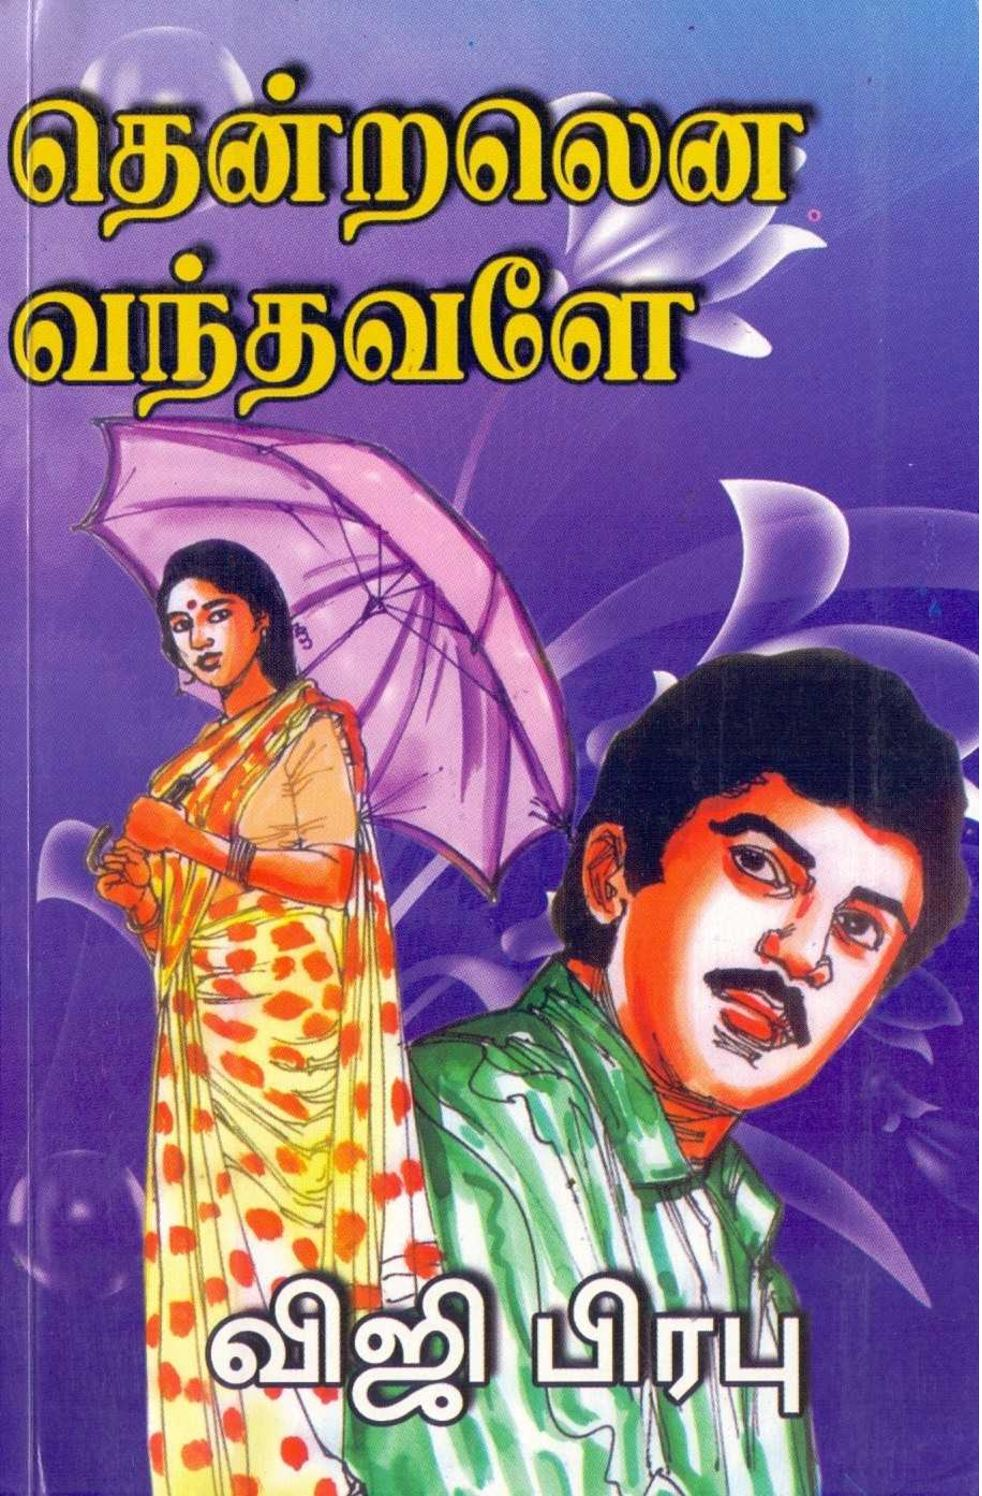 Viji Vignesh Novels Pdf